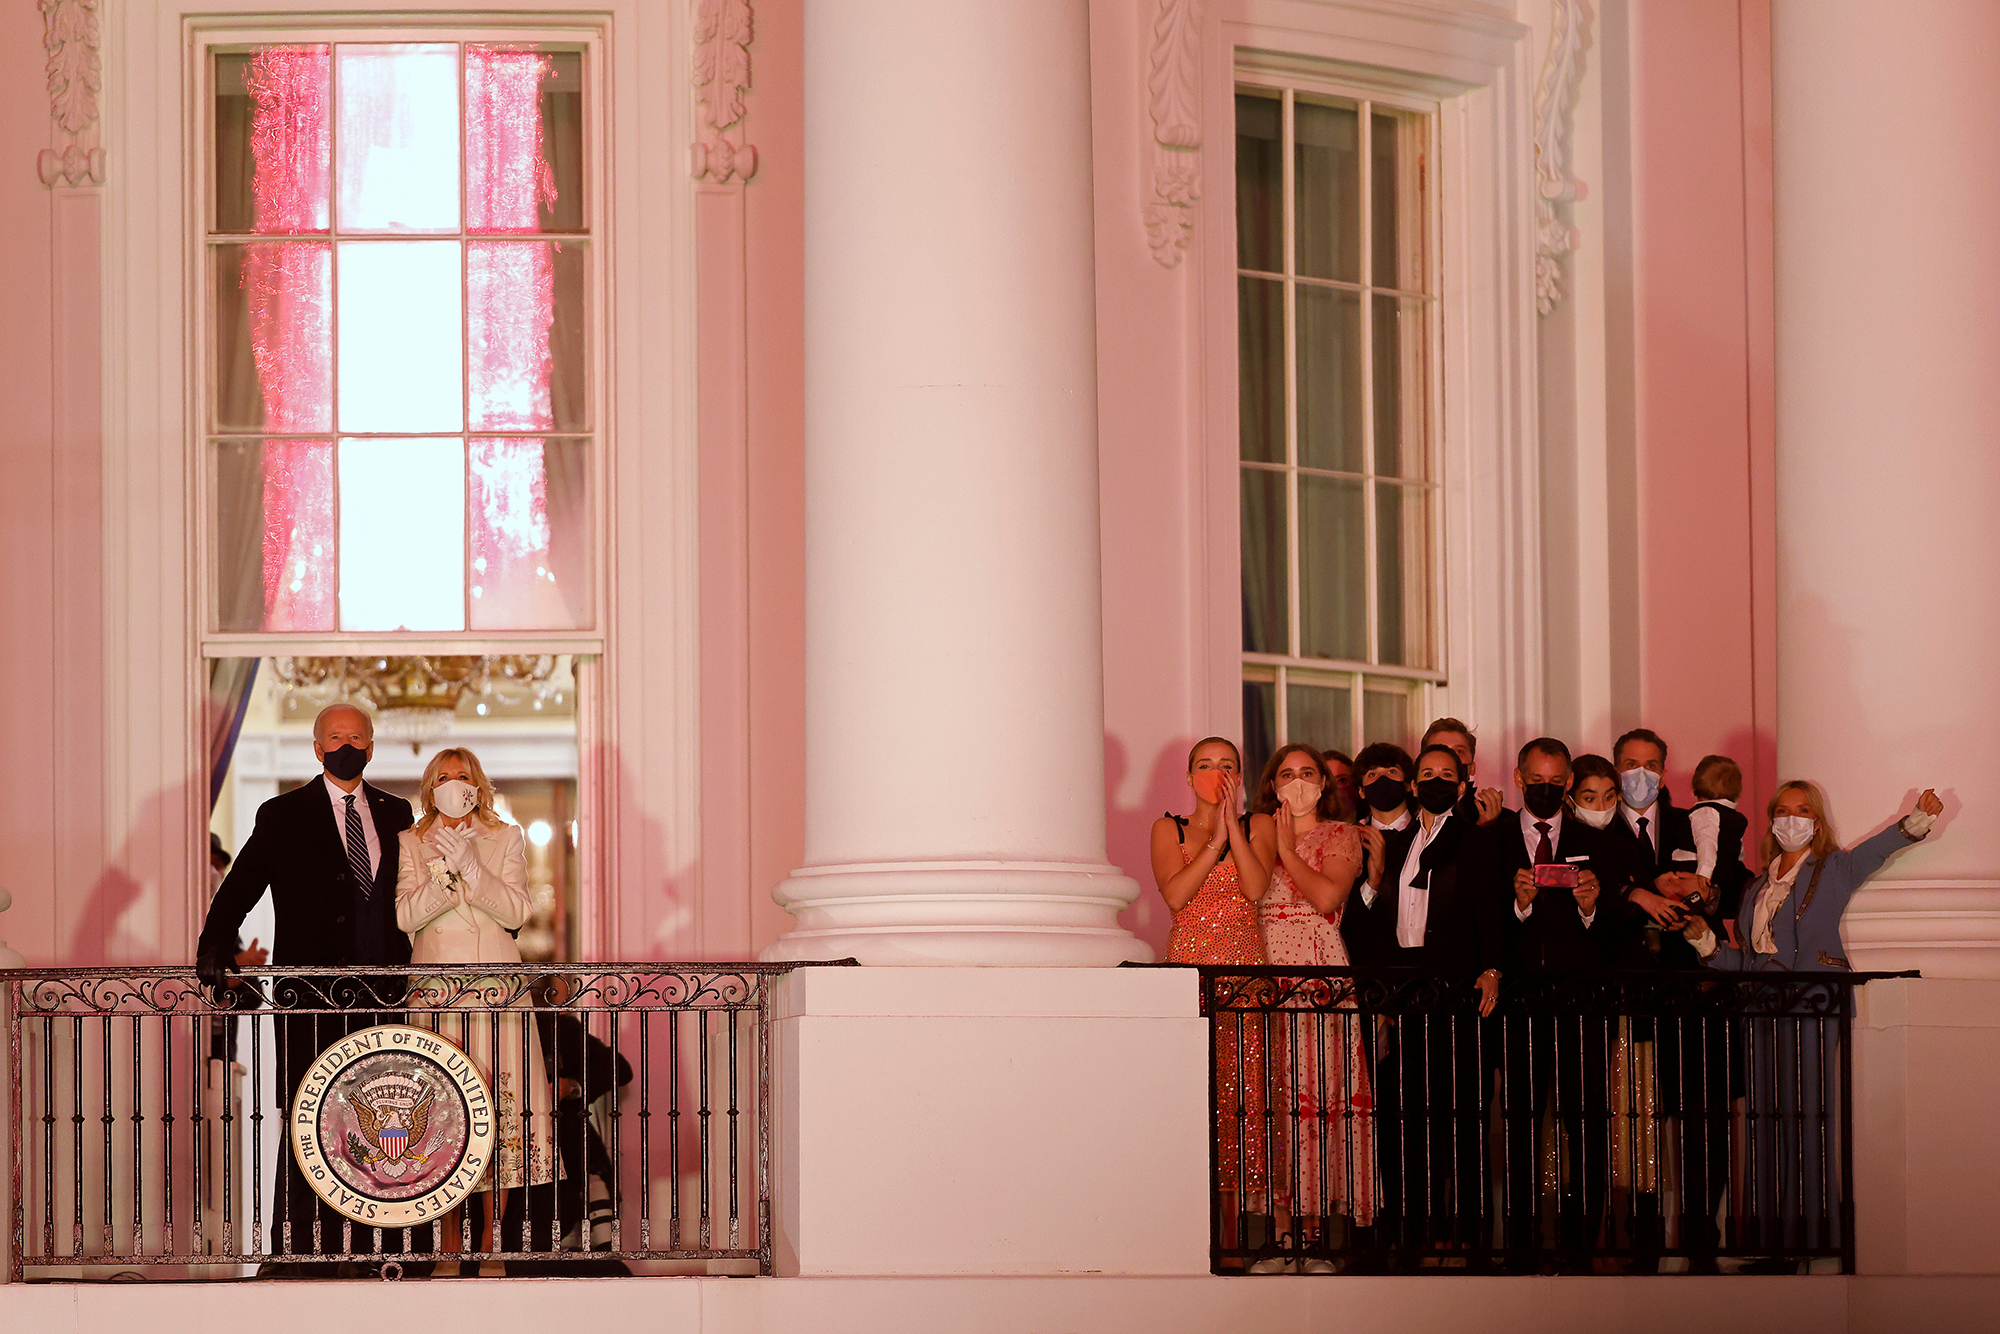 President Joe Biden, first lady Jill Biden, and their family watch fireworks from the White House after his inauguration as the 46th President of the United States on January 20.